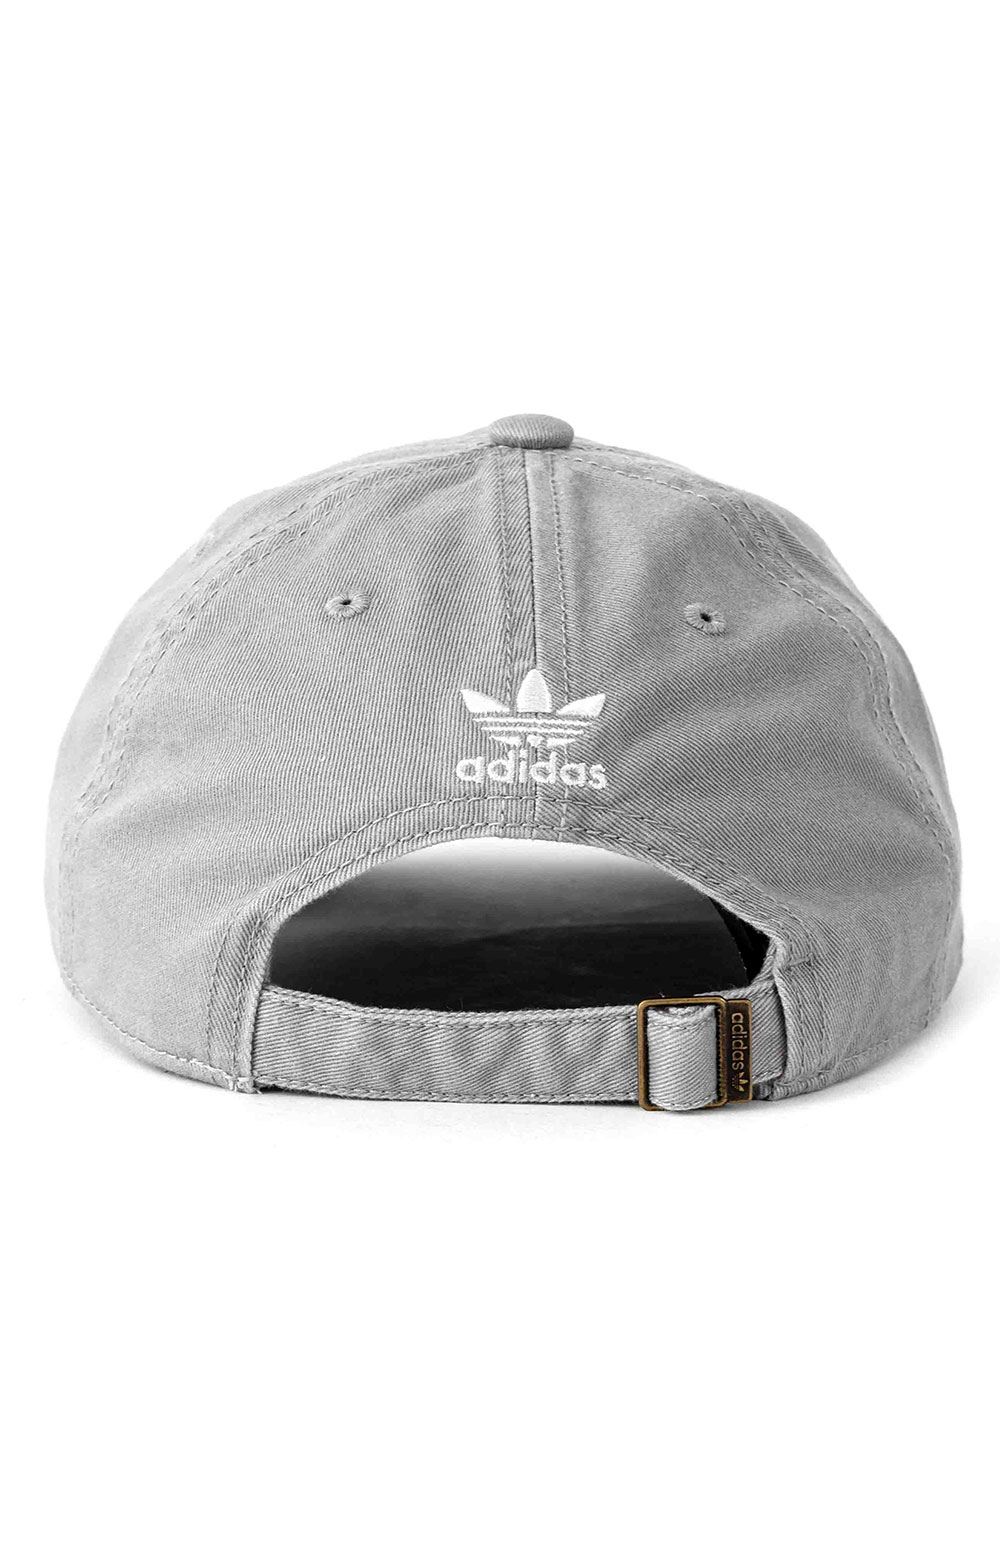 Originals Relaxed Strap-Back Hat - Dove Grey 3